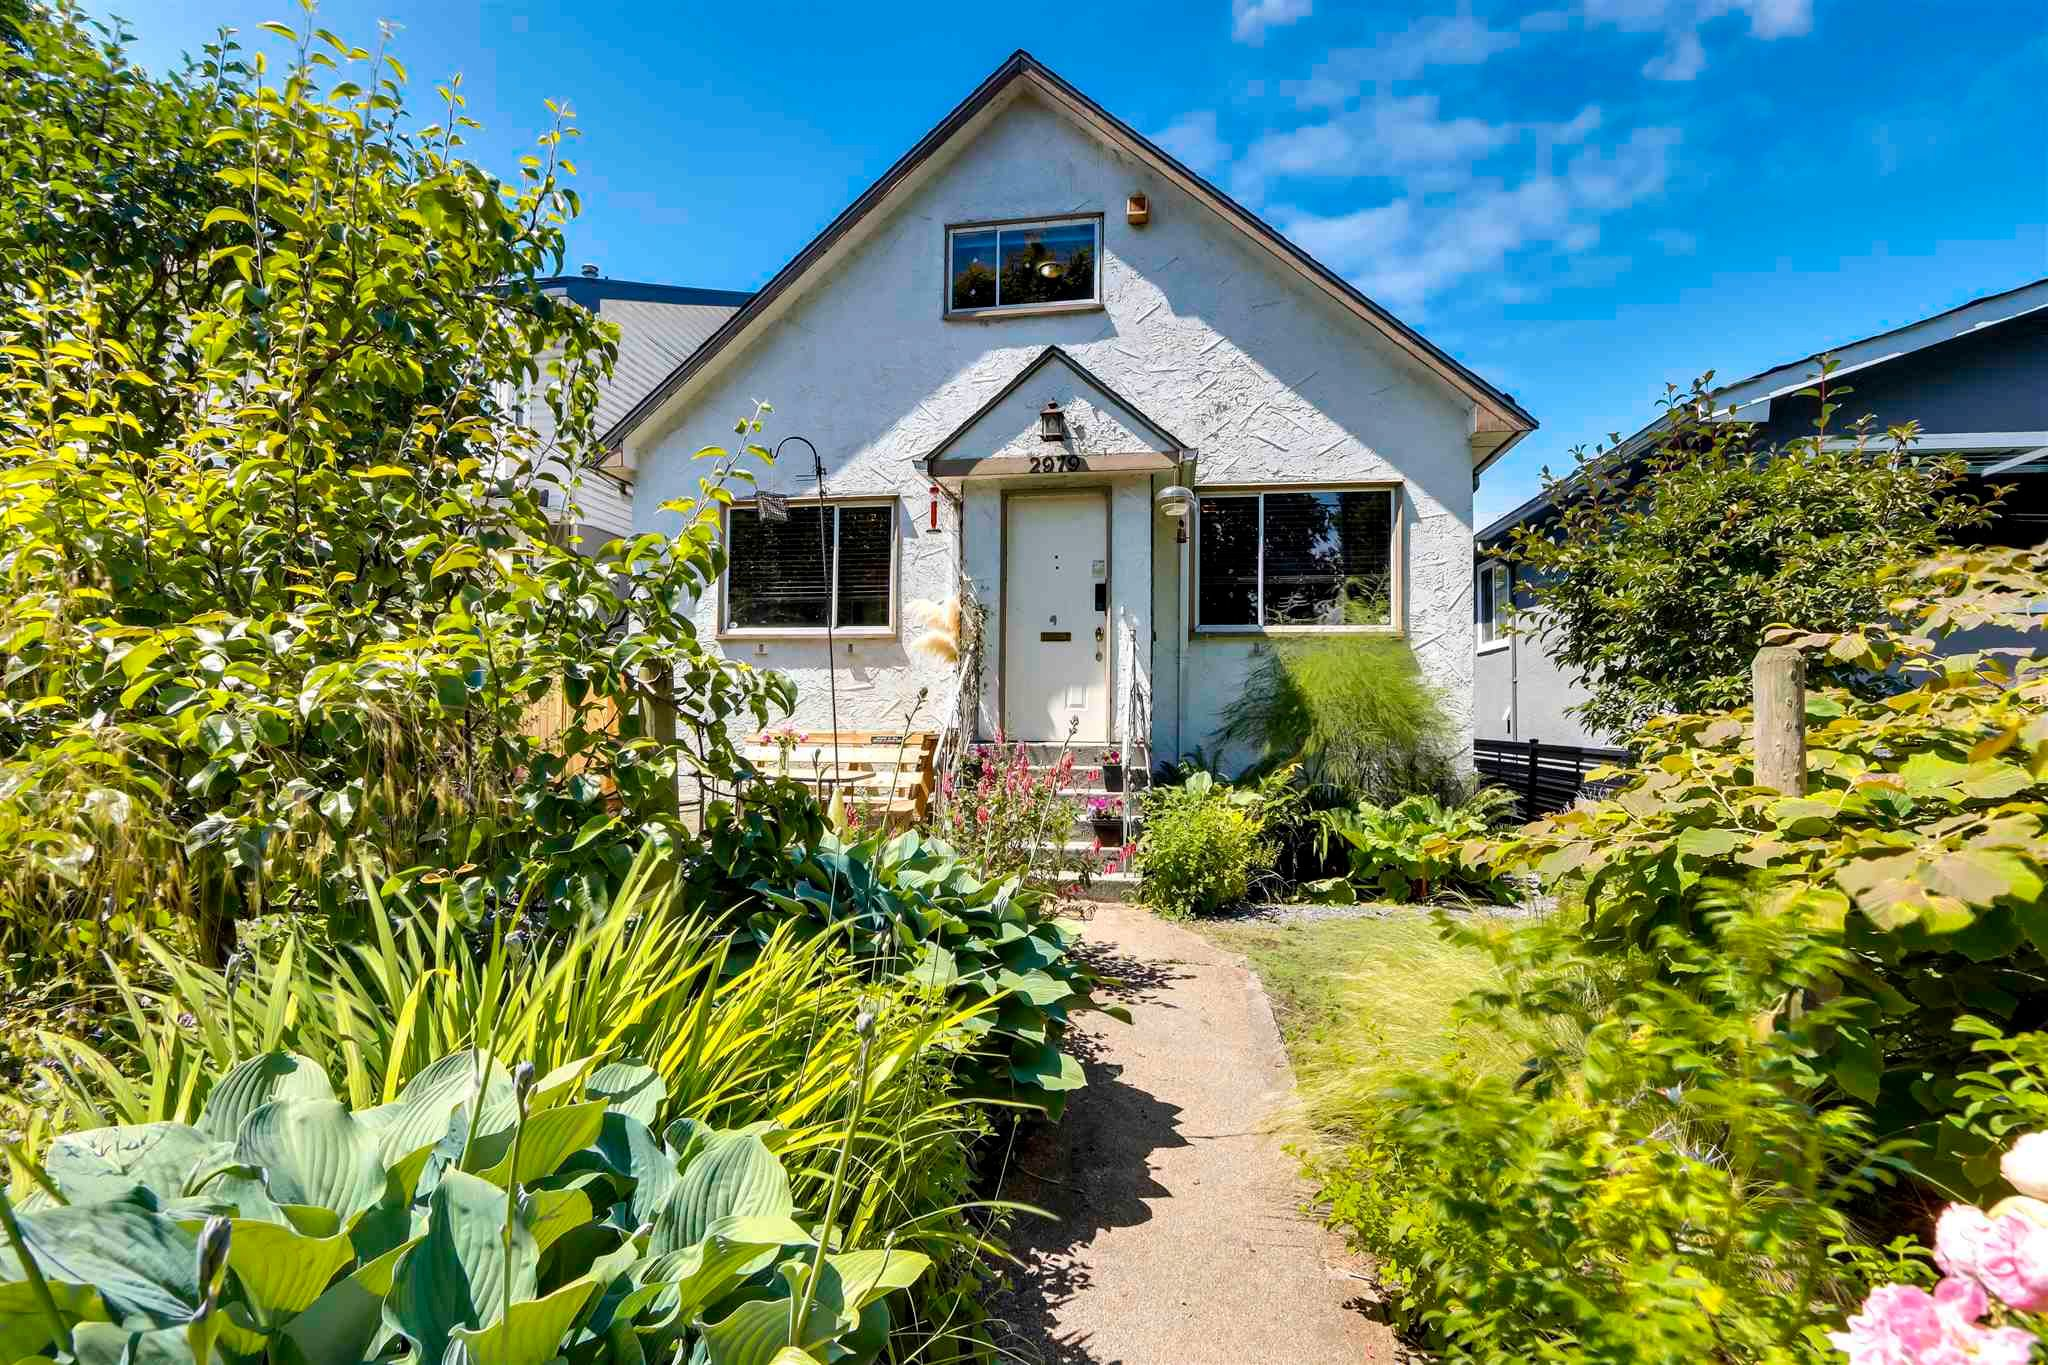 Main Photo: 2979 VICTORIA Drive in Vancouver: Grandview Woodland House for sale (Vancouver East)  : MLS®# R2595184